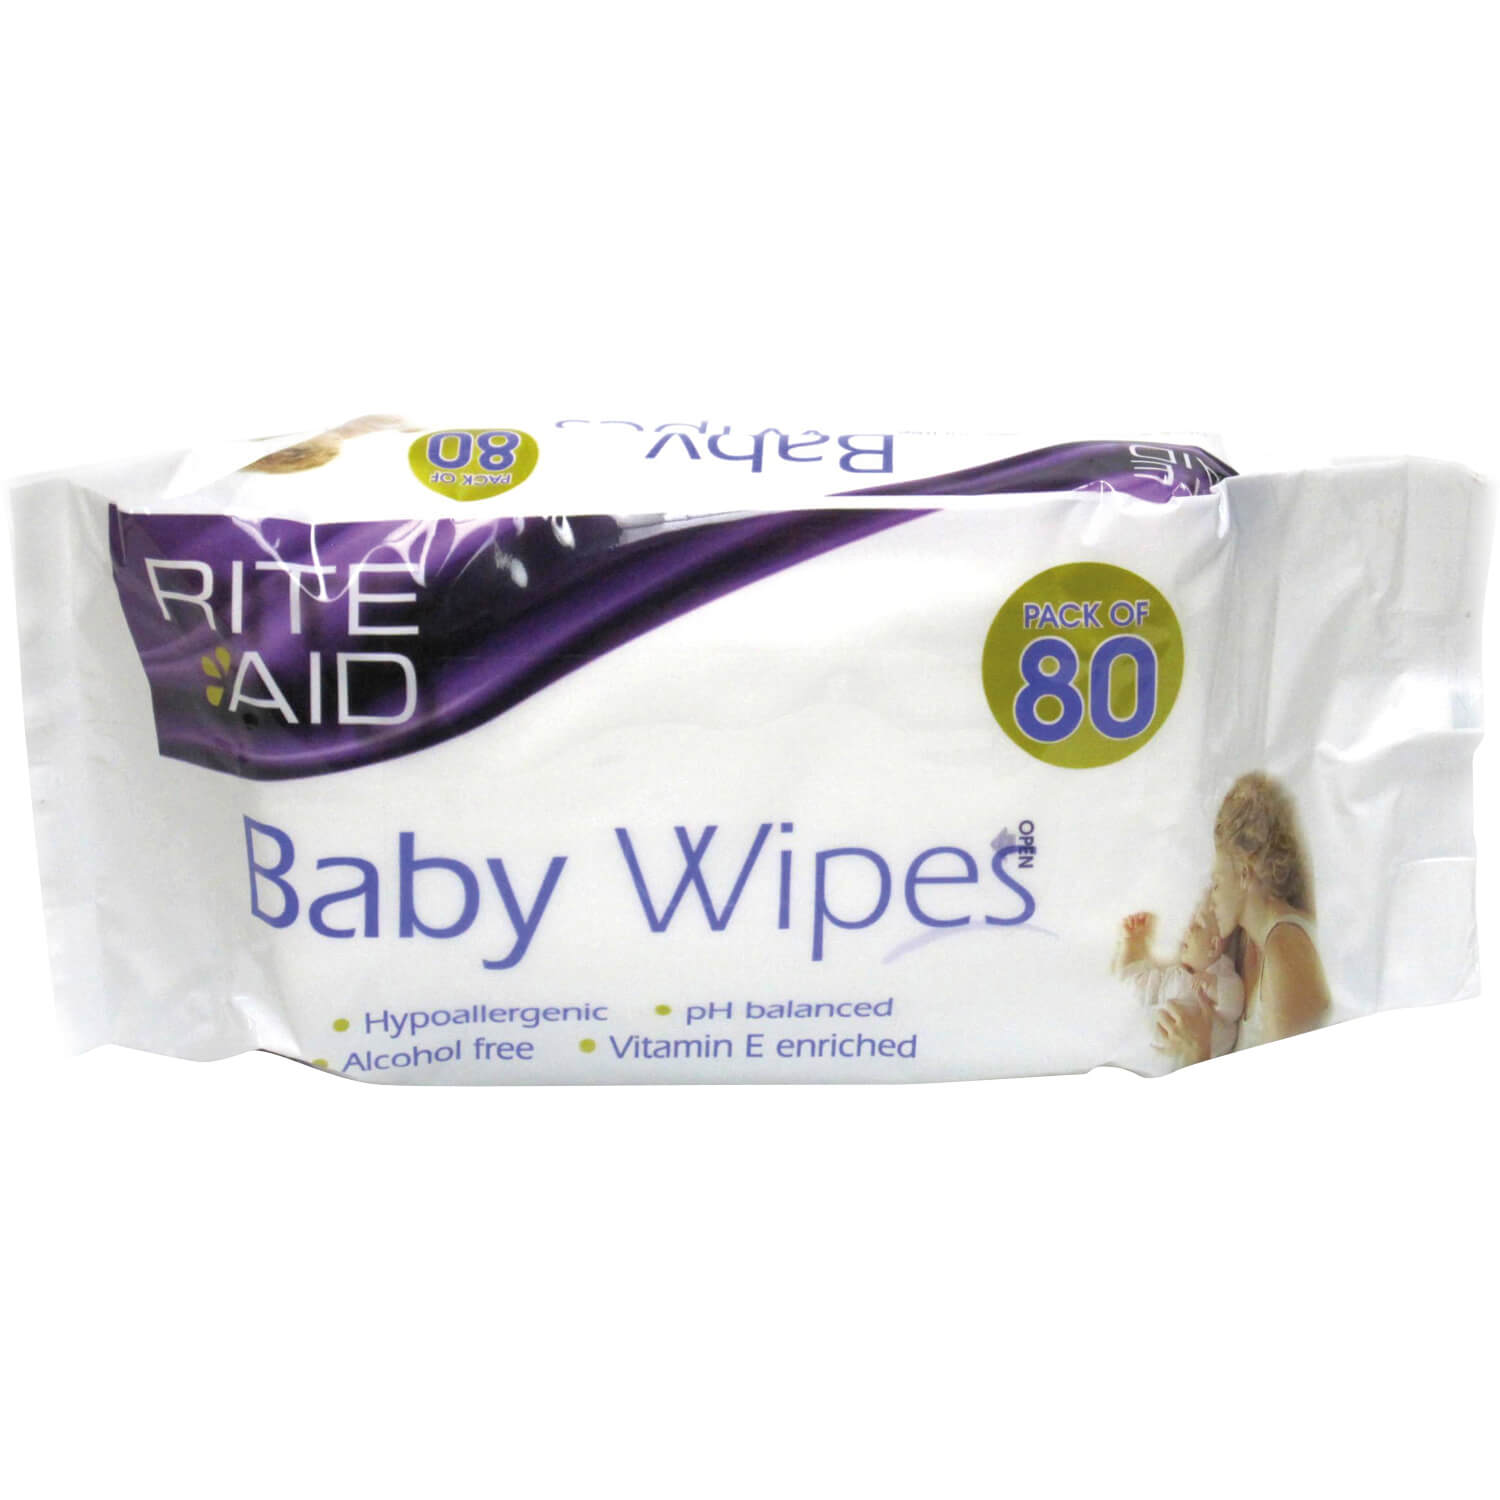 Rite Aid Extra Thick Baby Wipes 80s | Life Pharmacy New Zealand